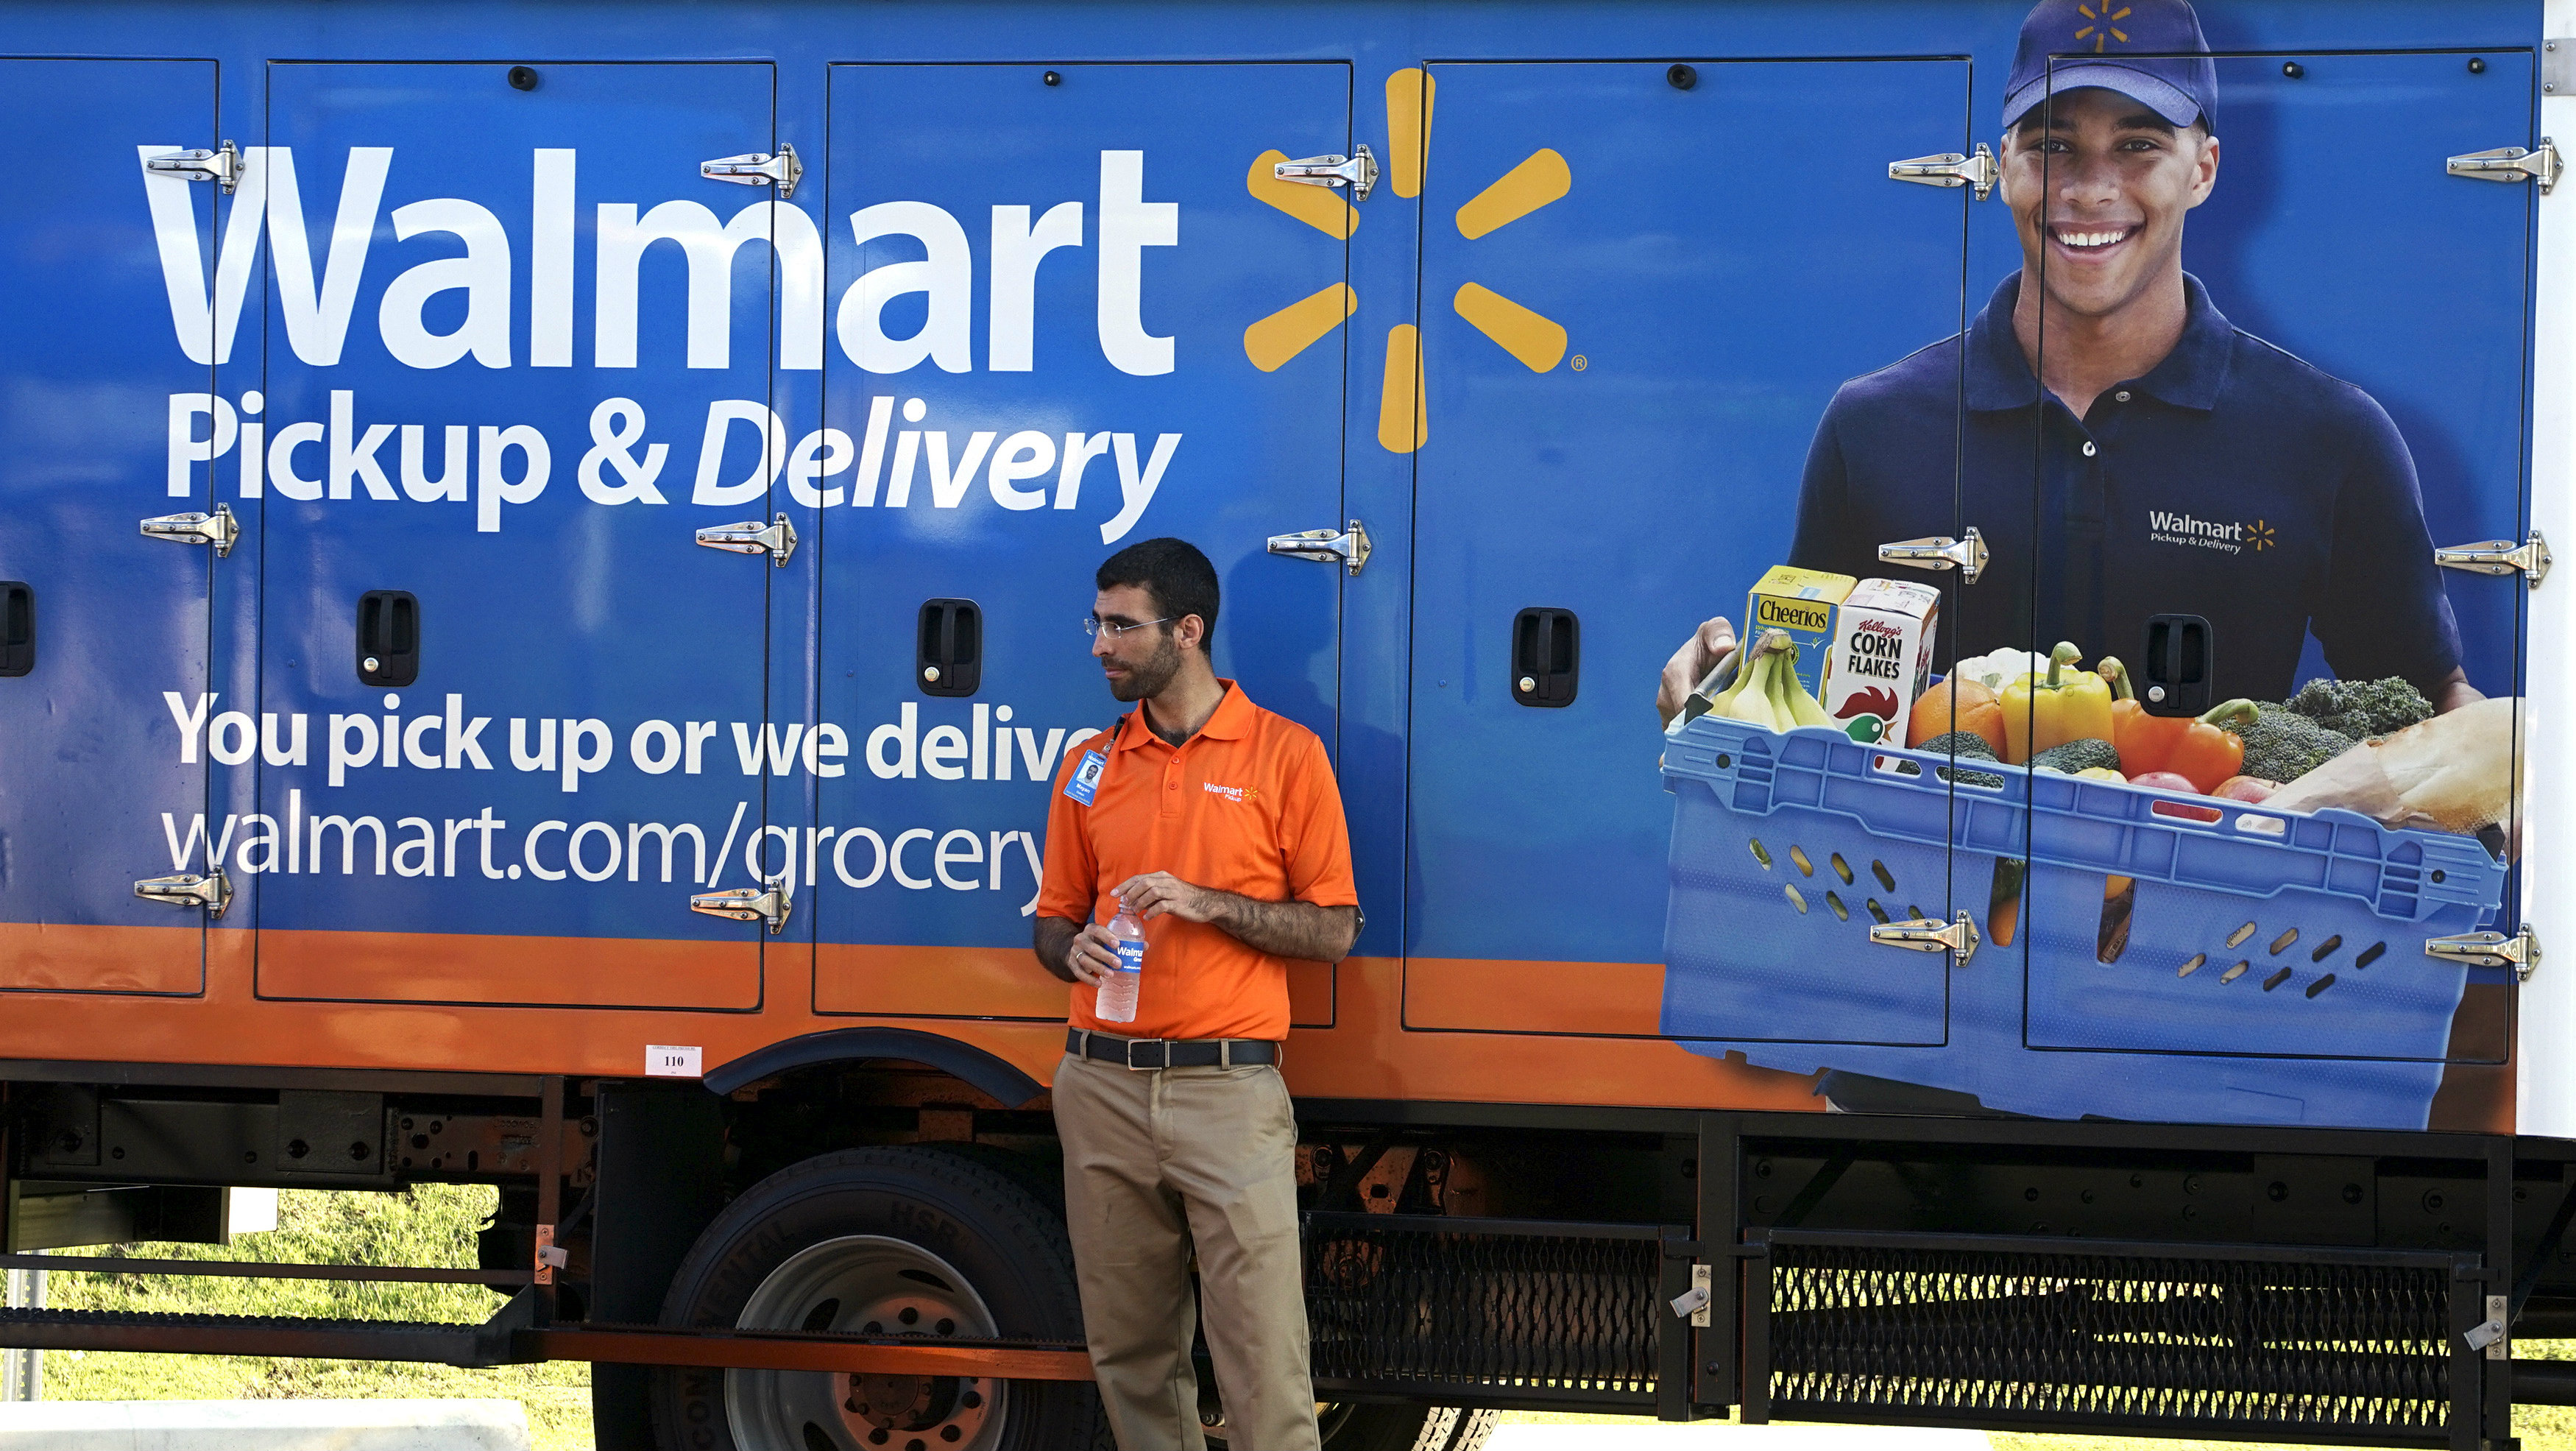 A man standing in front of a Wal-Mart delivery truck